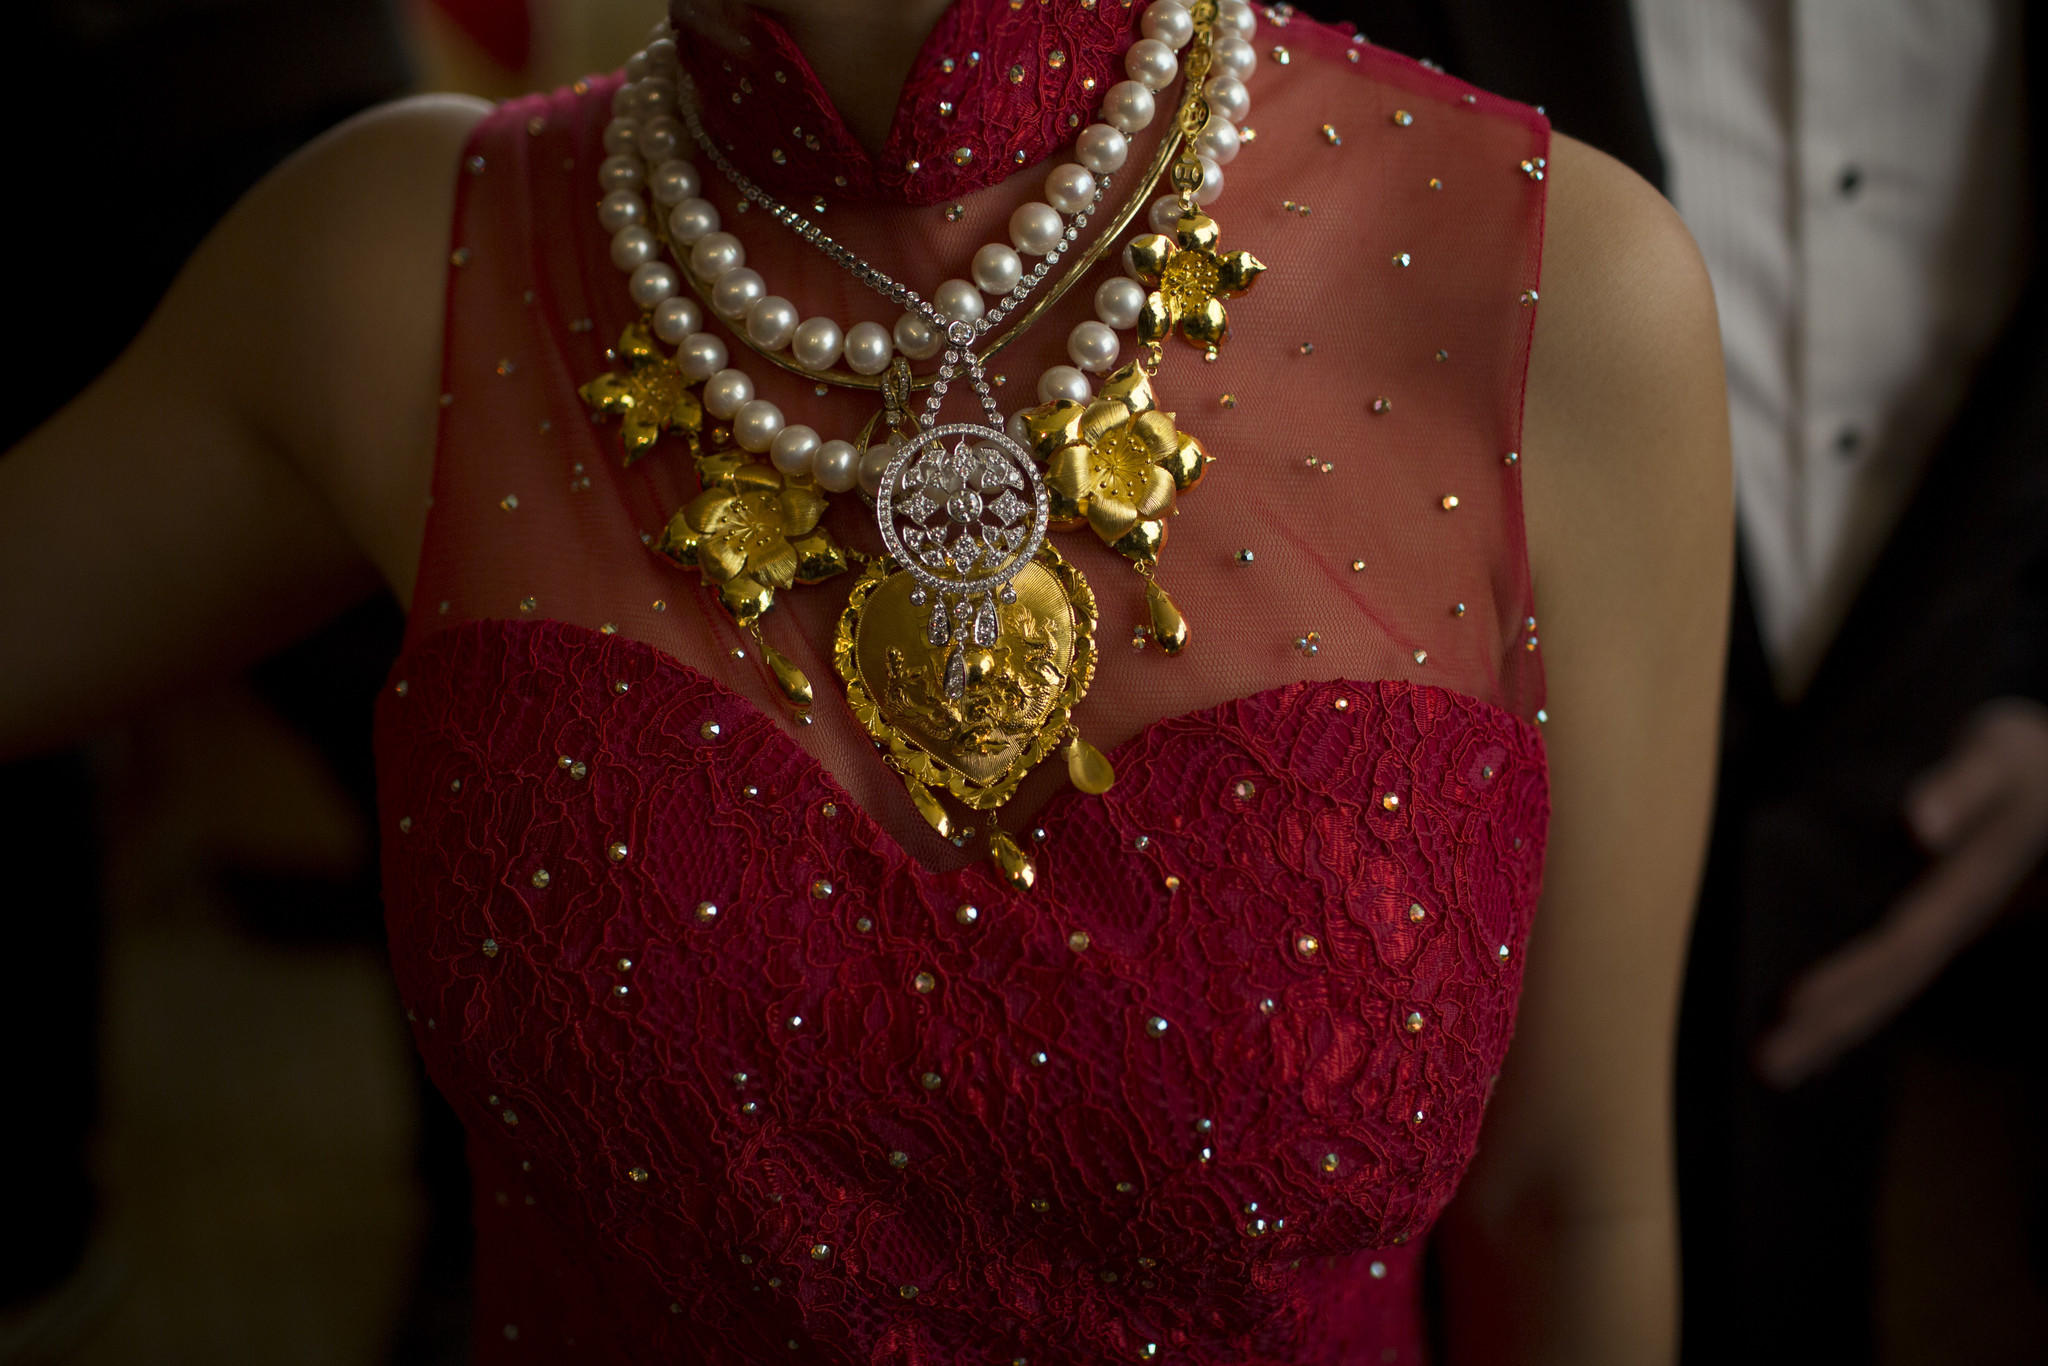 A bride wears gold, pearl and diamond necklaces during the tea ceremony of her wedding in Hong Kong, China, on Saturday, Jan. 25, 2014.